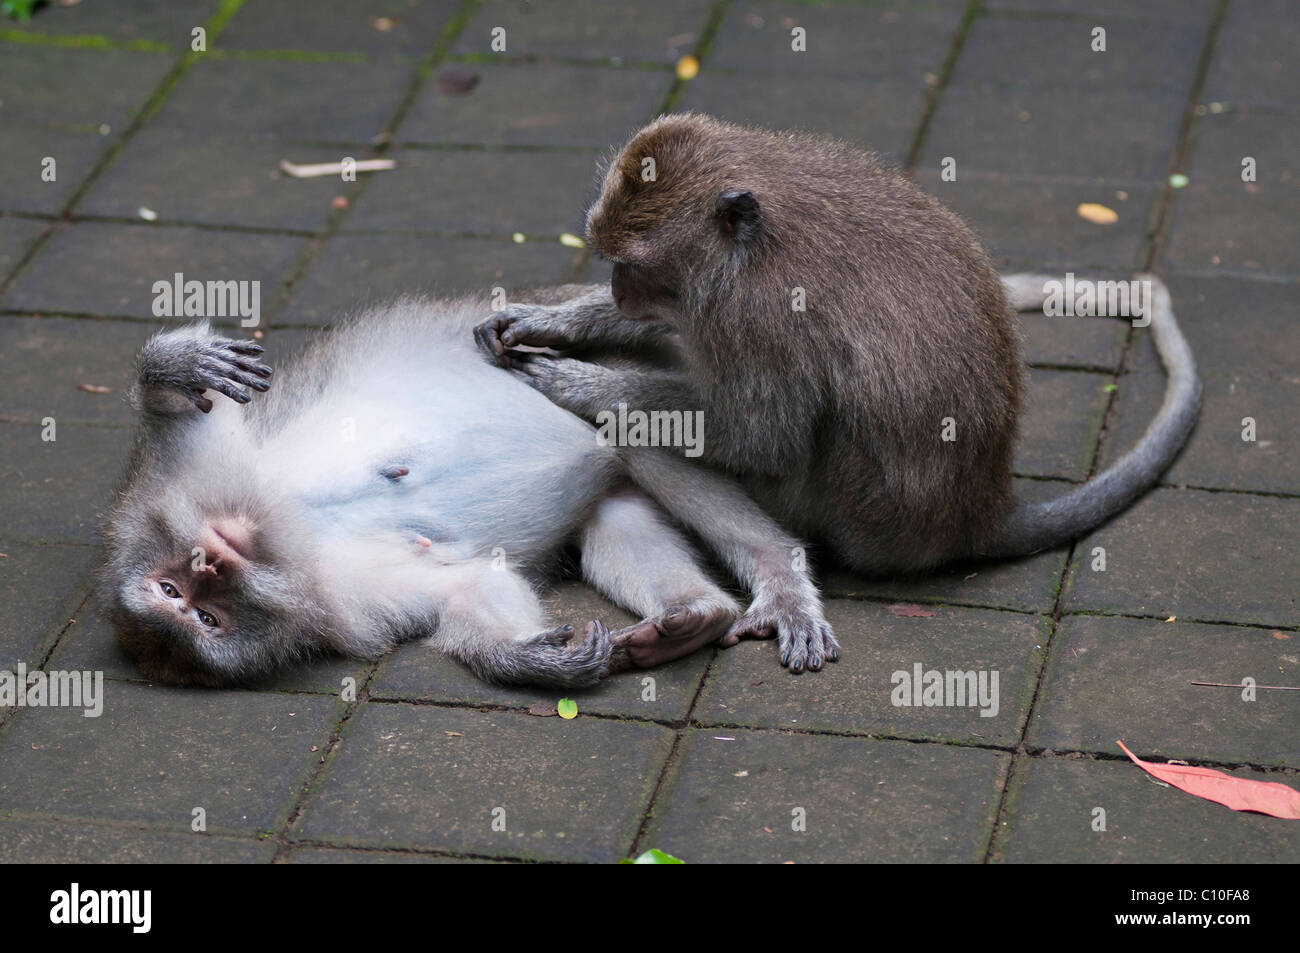 Balinese long-tailed macaques grooming in the Monkey Forest at Ubud in Bali - Stock Image